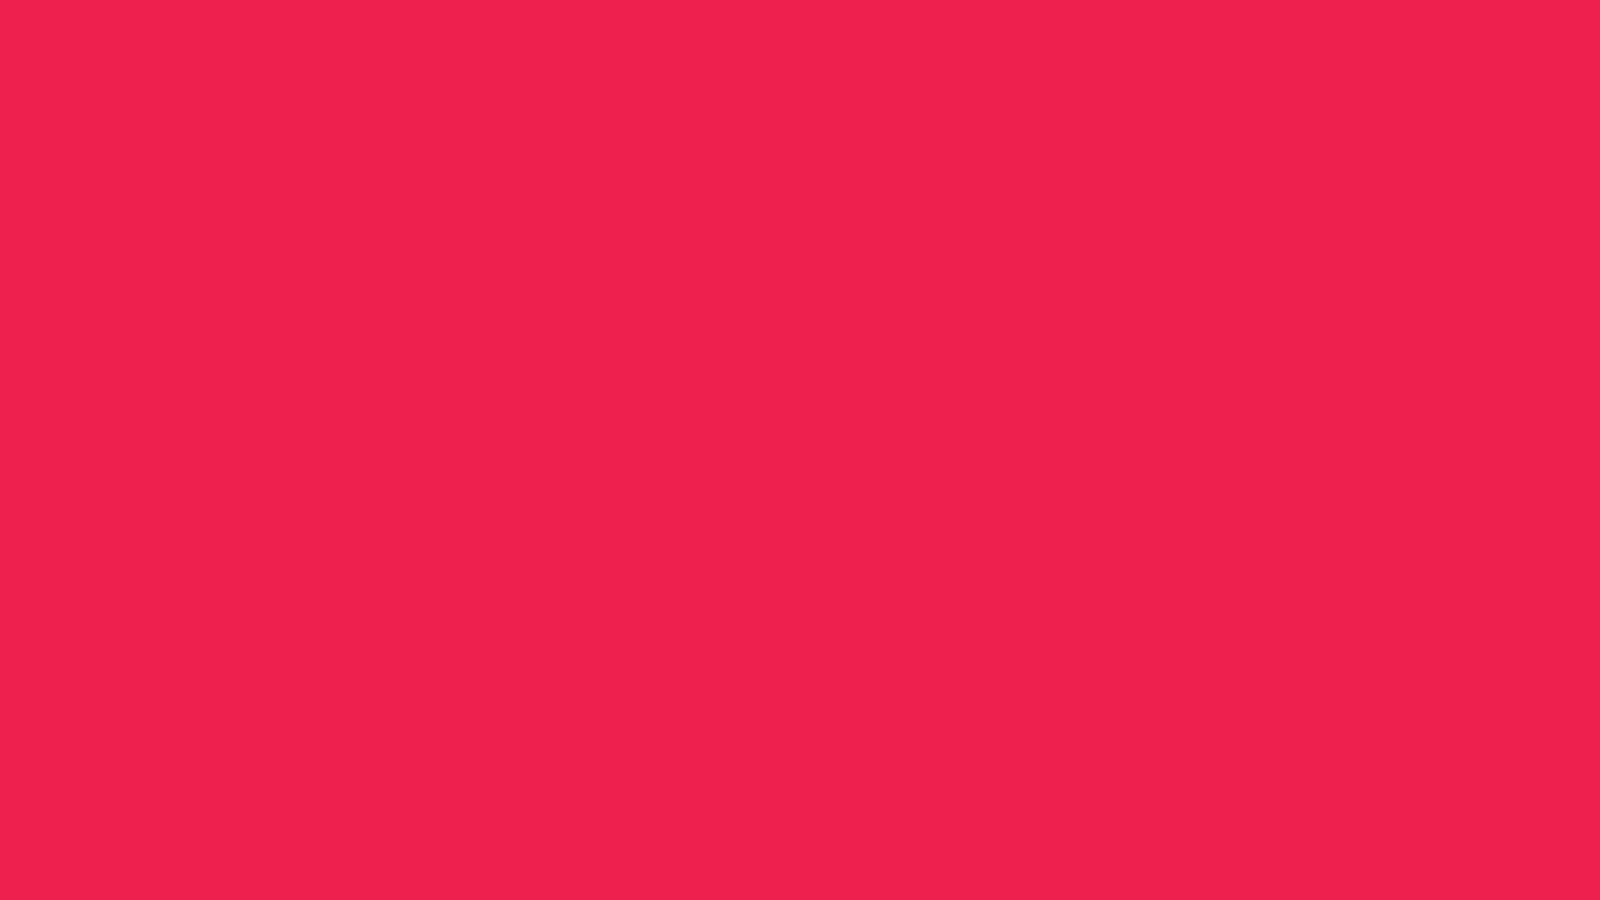 1600x900 Red Crayola Solid Color Background